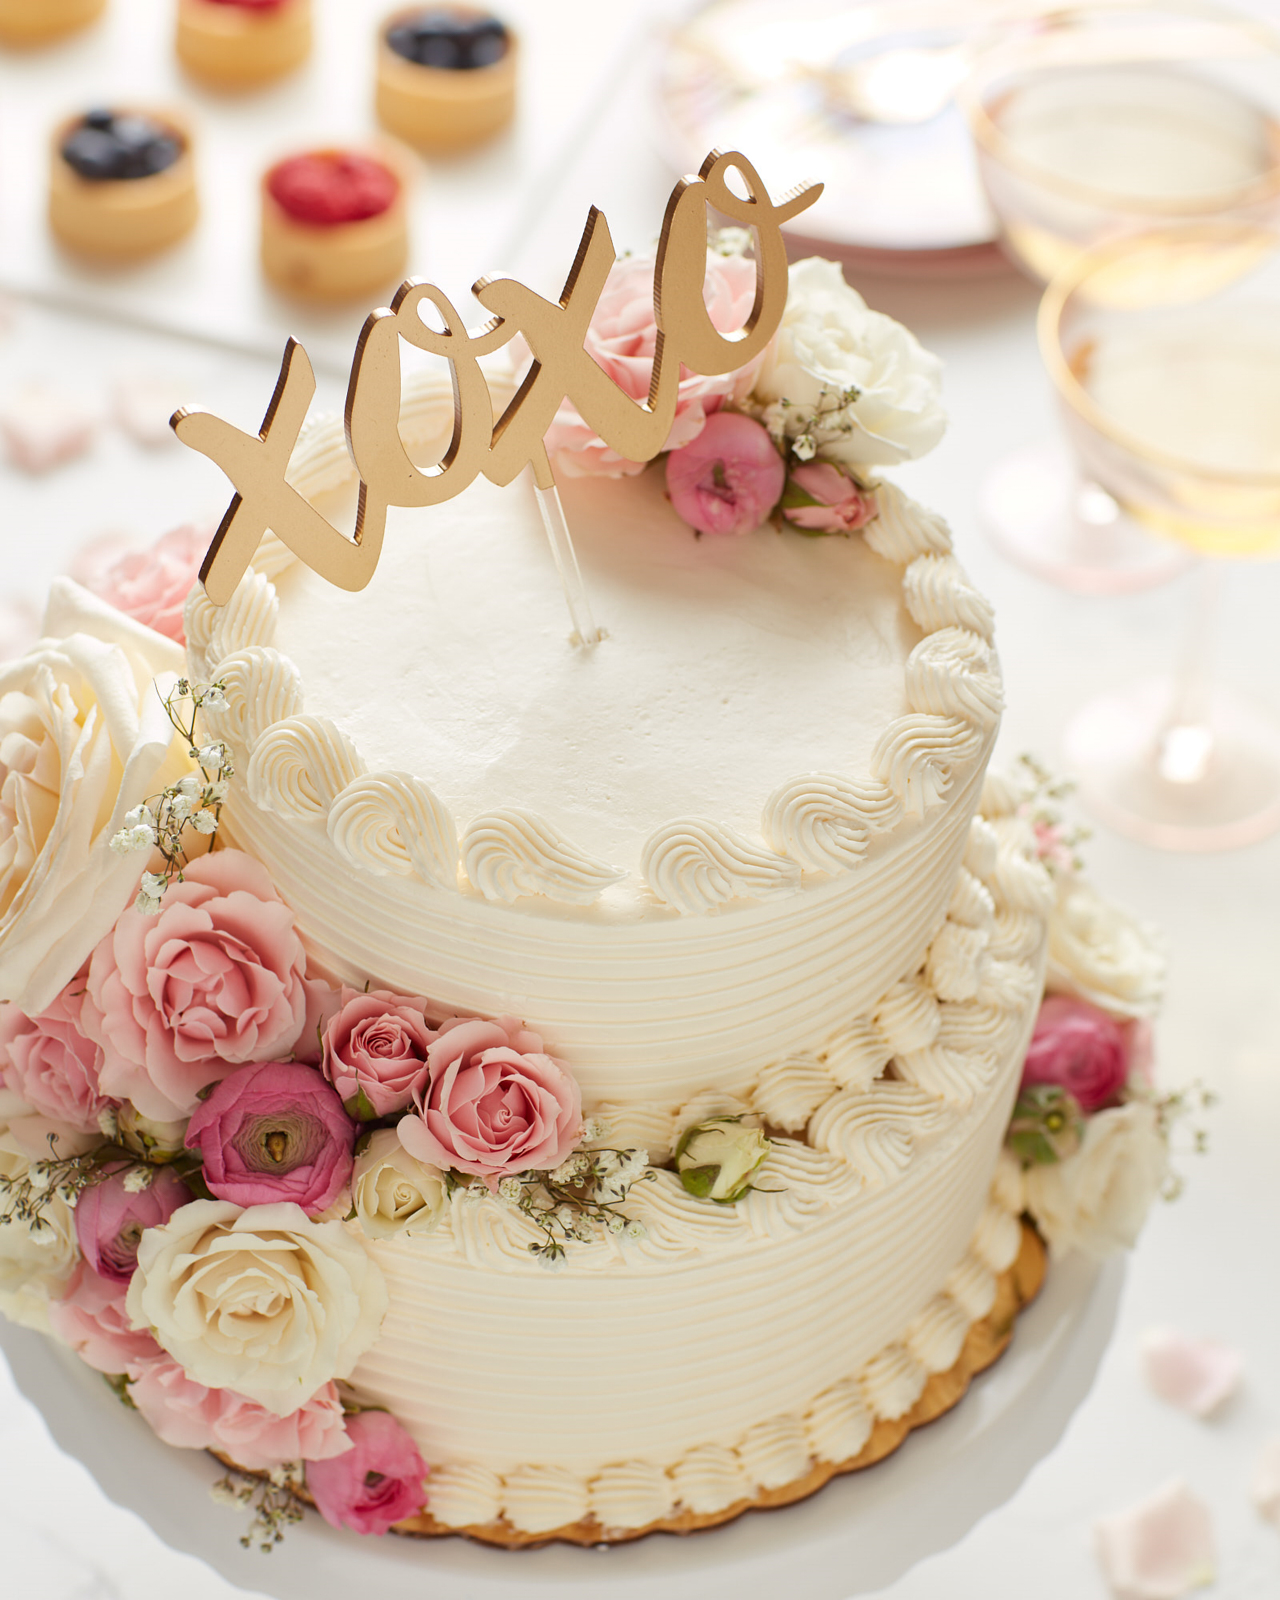 White two-tier wedding cake with pink and white flowers and a XOXO cake topper